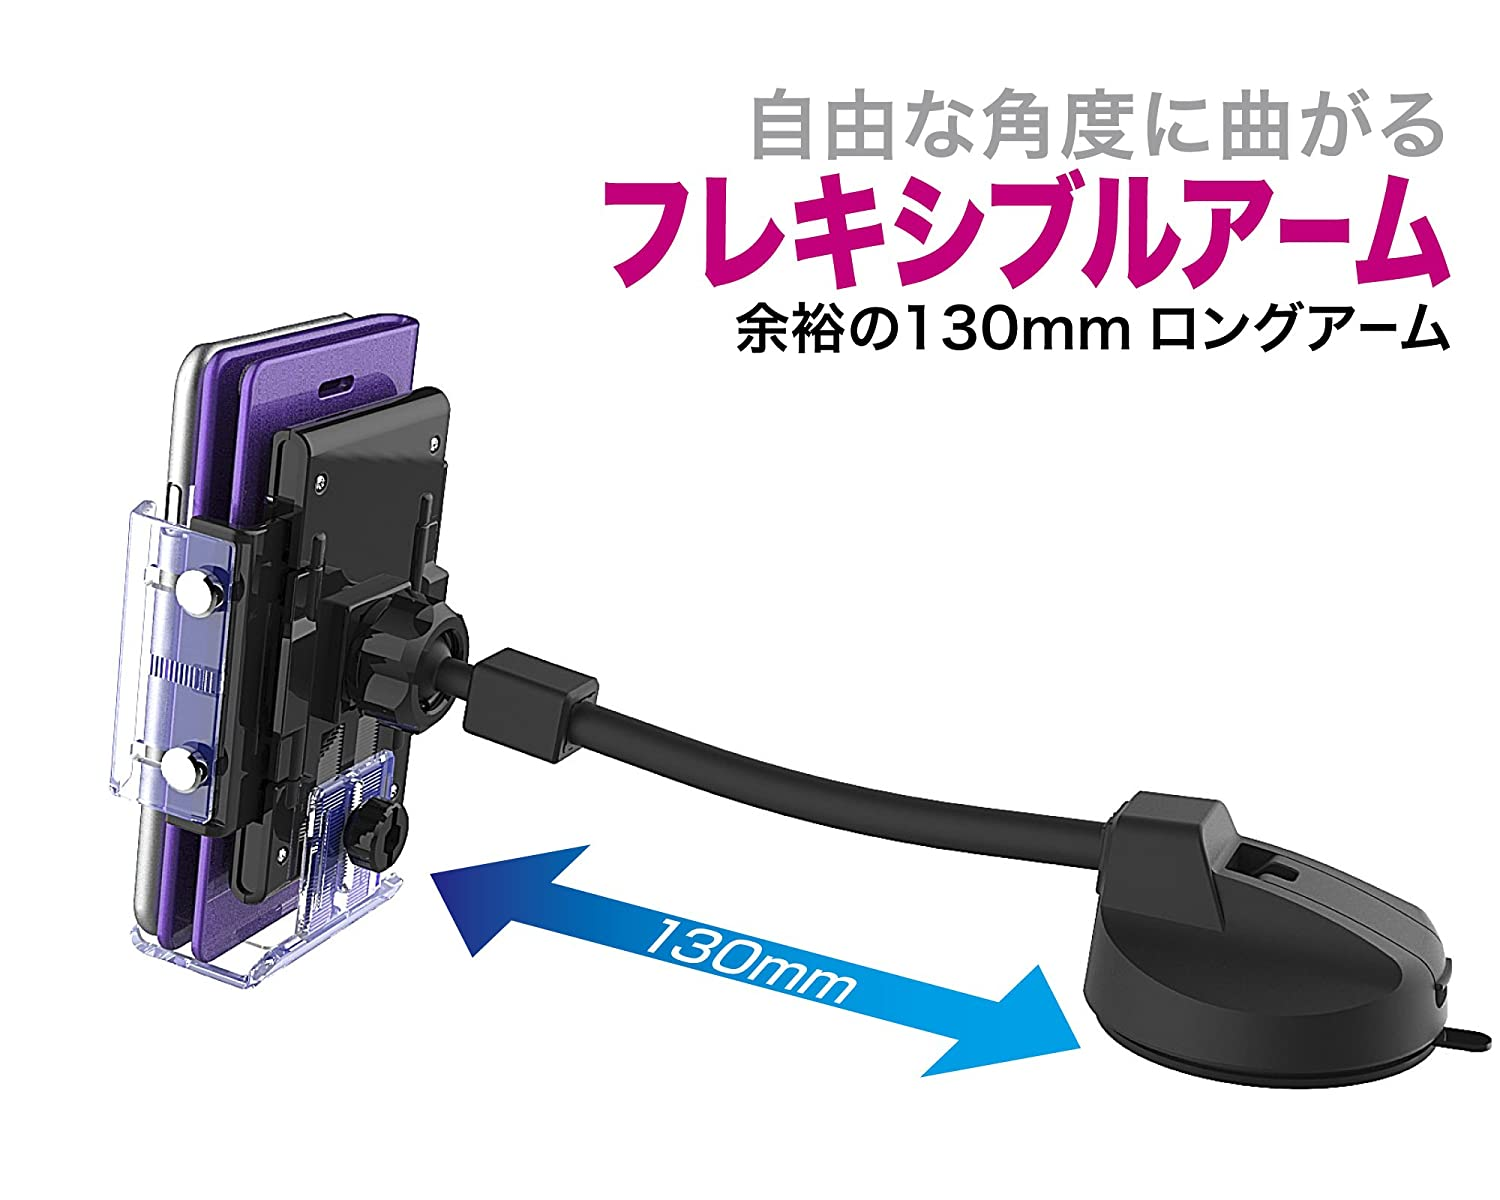 LTD SEIKOSANGYO CO. EC-192 Smartphone Holder For Car Compatible with Notebook-style Wallet Case Works with Large Smartphones Freely Bending Flexible Arm Suction with Gel Black Designed in Japan